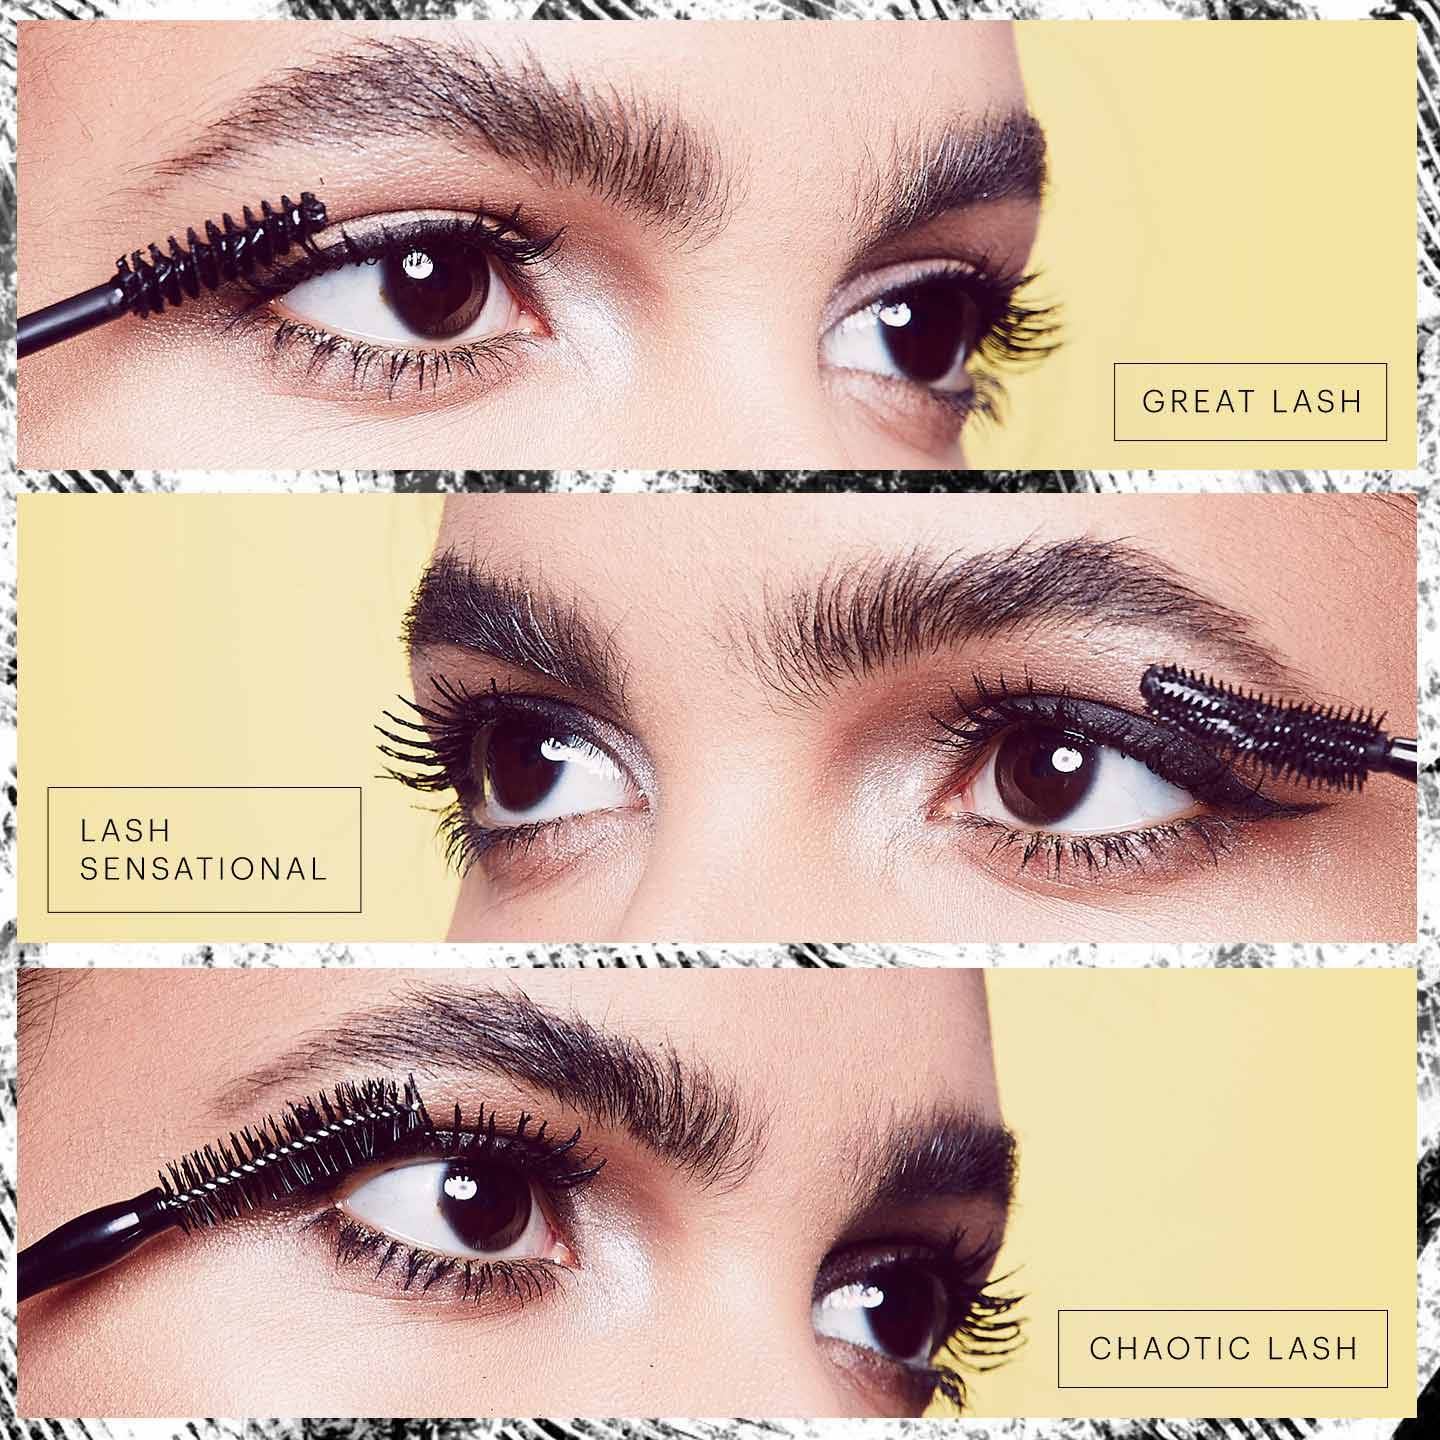 maybelline-tips-mascara-for-summer-comp